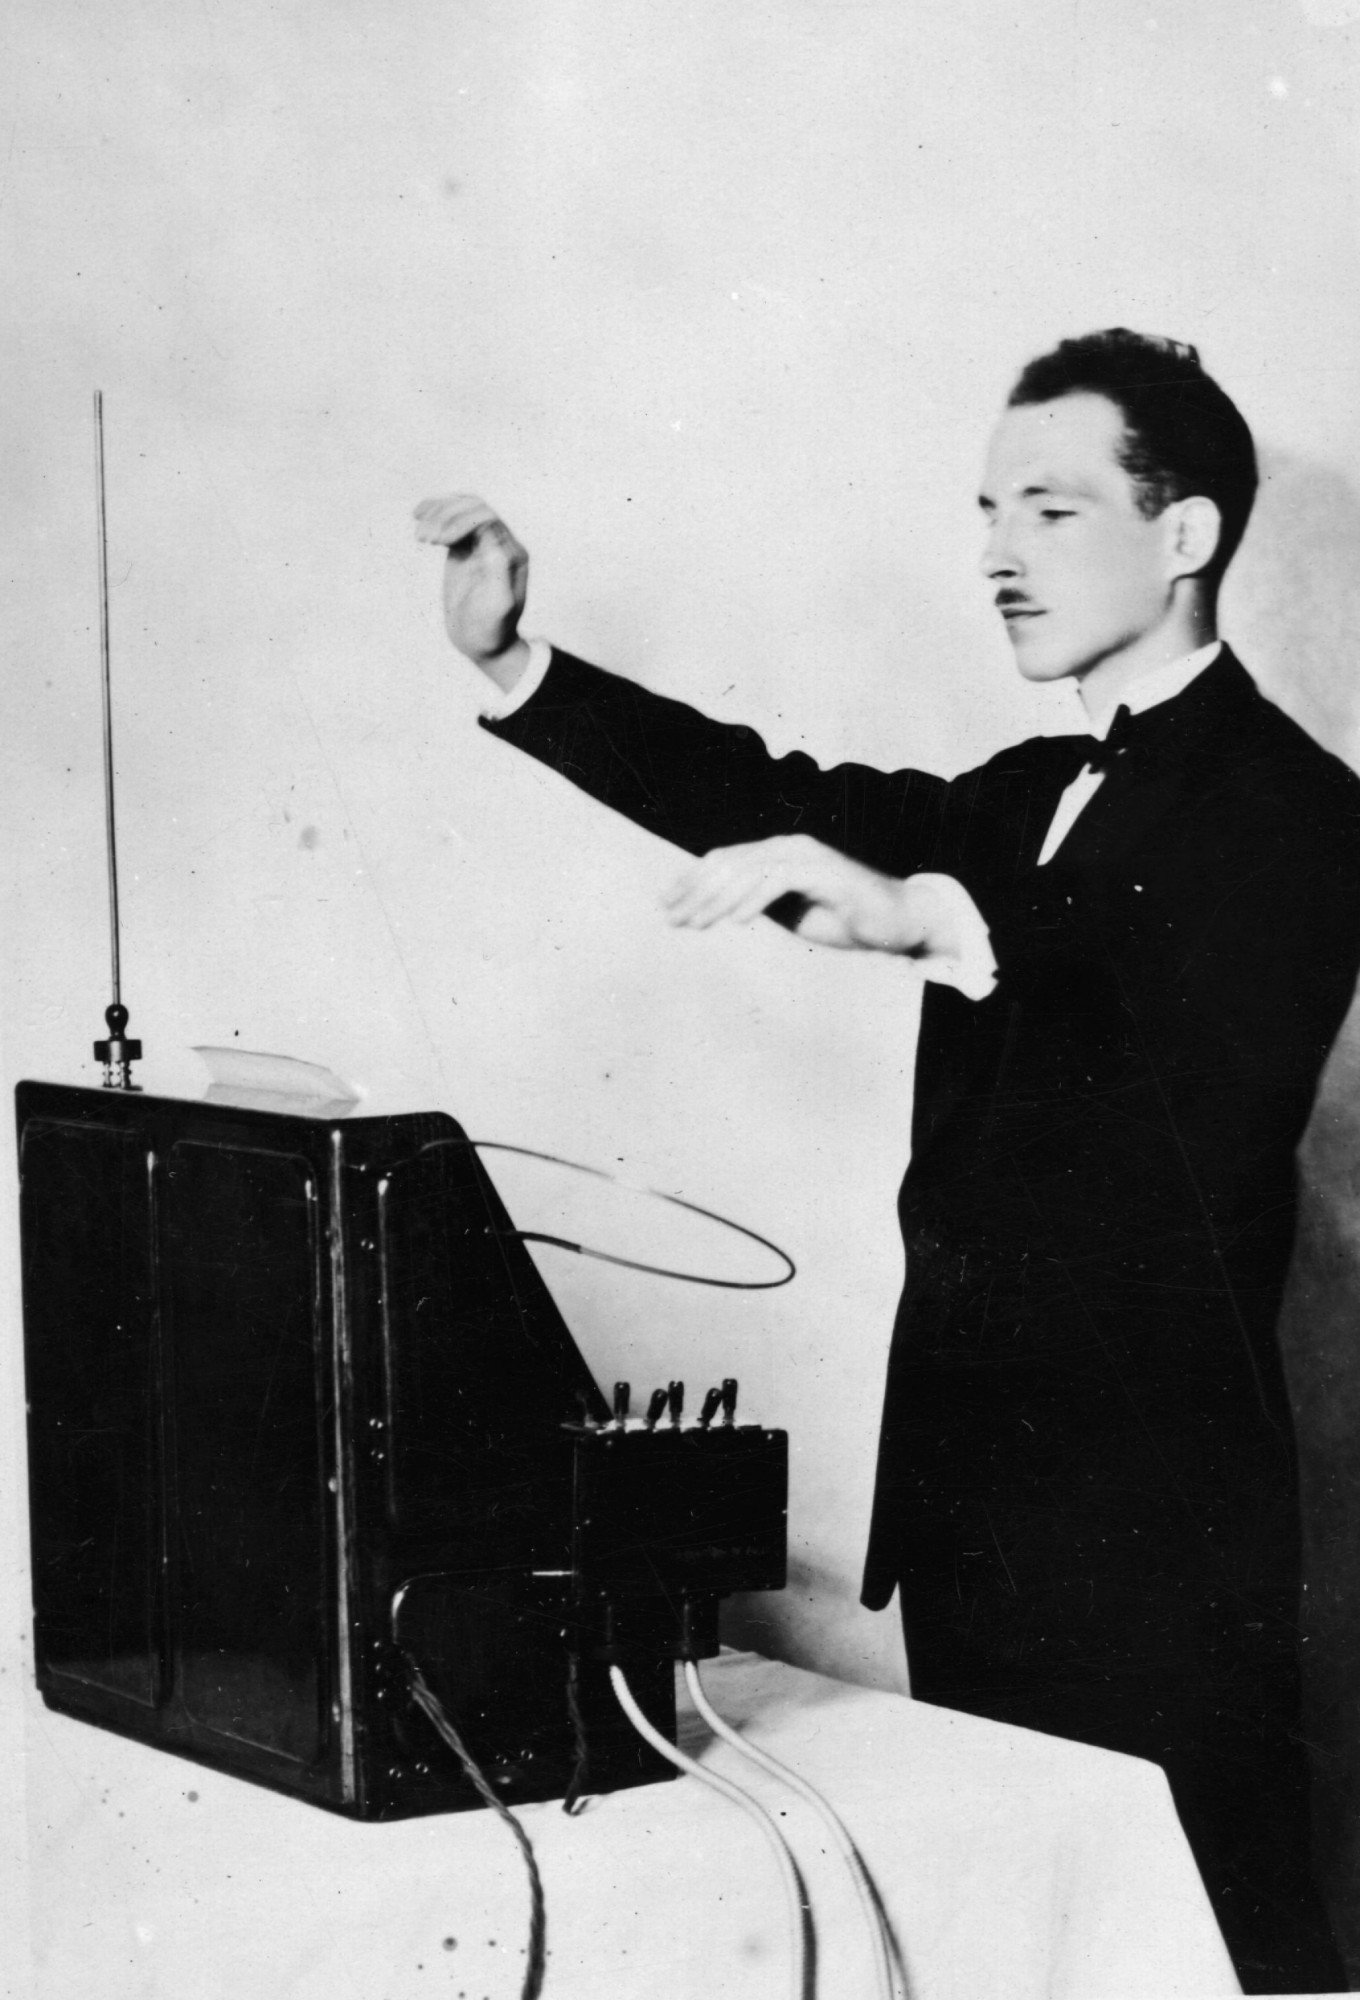 12th December 1927: Professor Leon Theremin demonstrating his theremin. The theremin was the world's first electronic musical instrument. It is played without actually touching any part of the instrument. Film scores of the 40s and 50s used the instrument to eerie effect and it makes a famous appearance in the chorus of the Beach Boys hit 'Good Vibrations'. (Photo by Topical Press Agency/Getty Images)